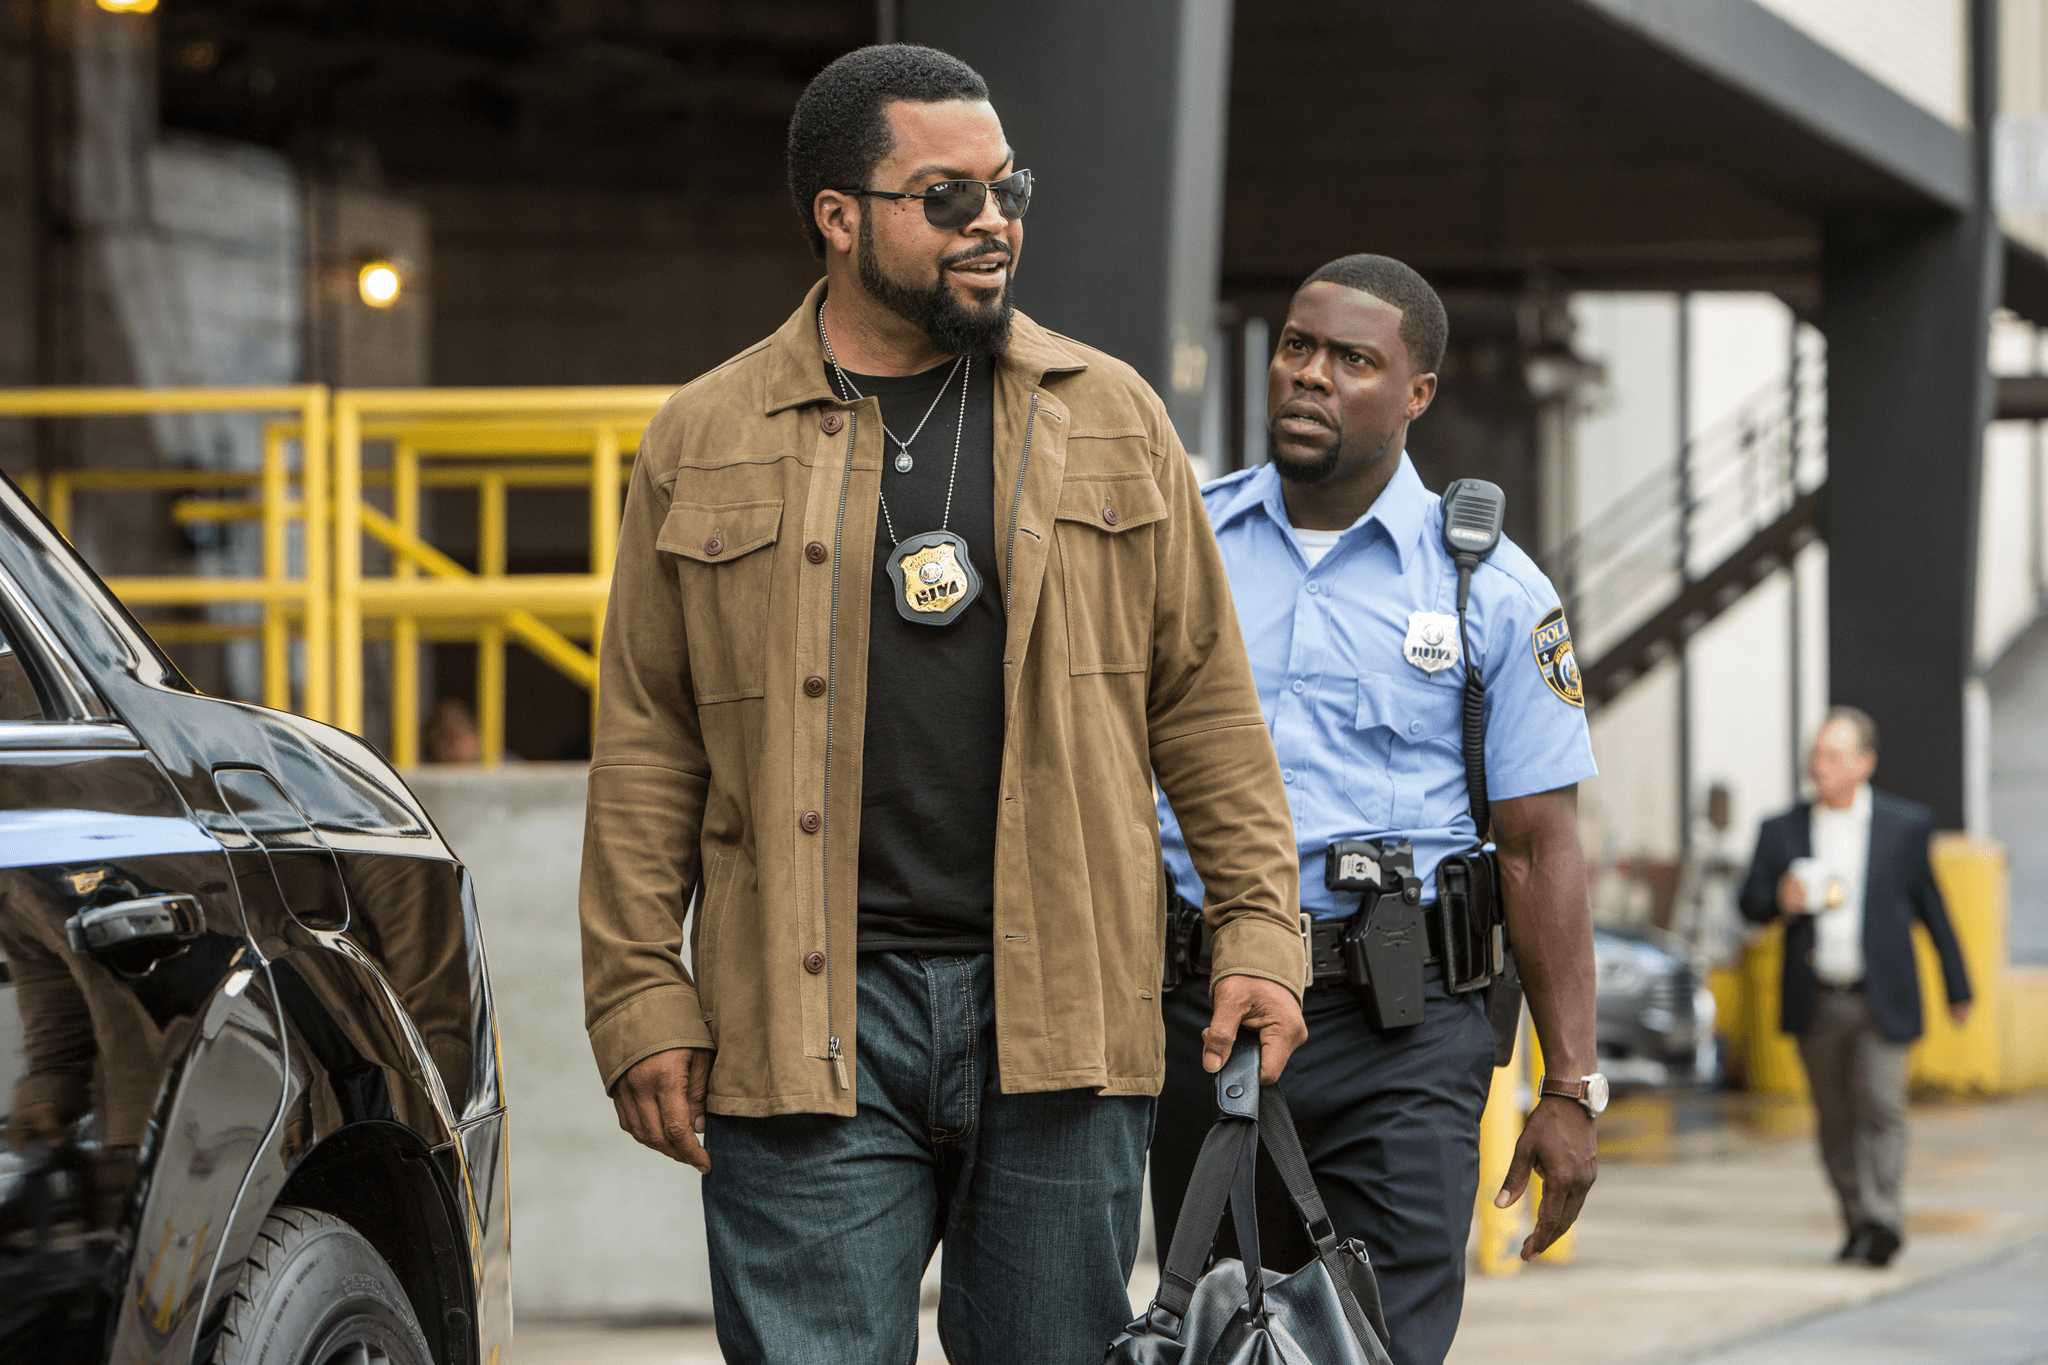 Ride Along 2 stars Ice Cube and Kevin Hart